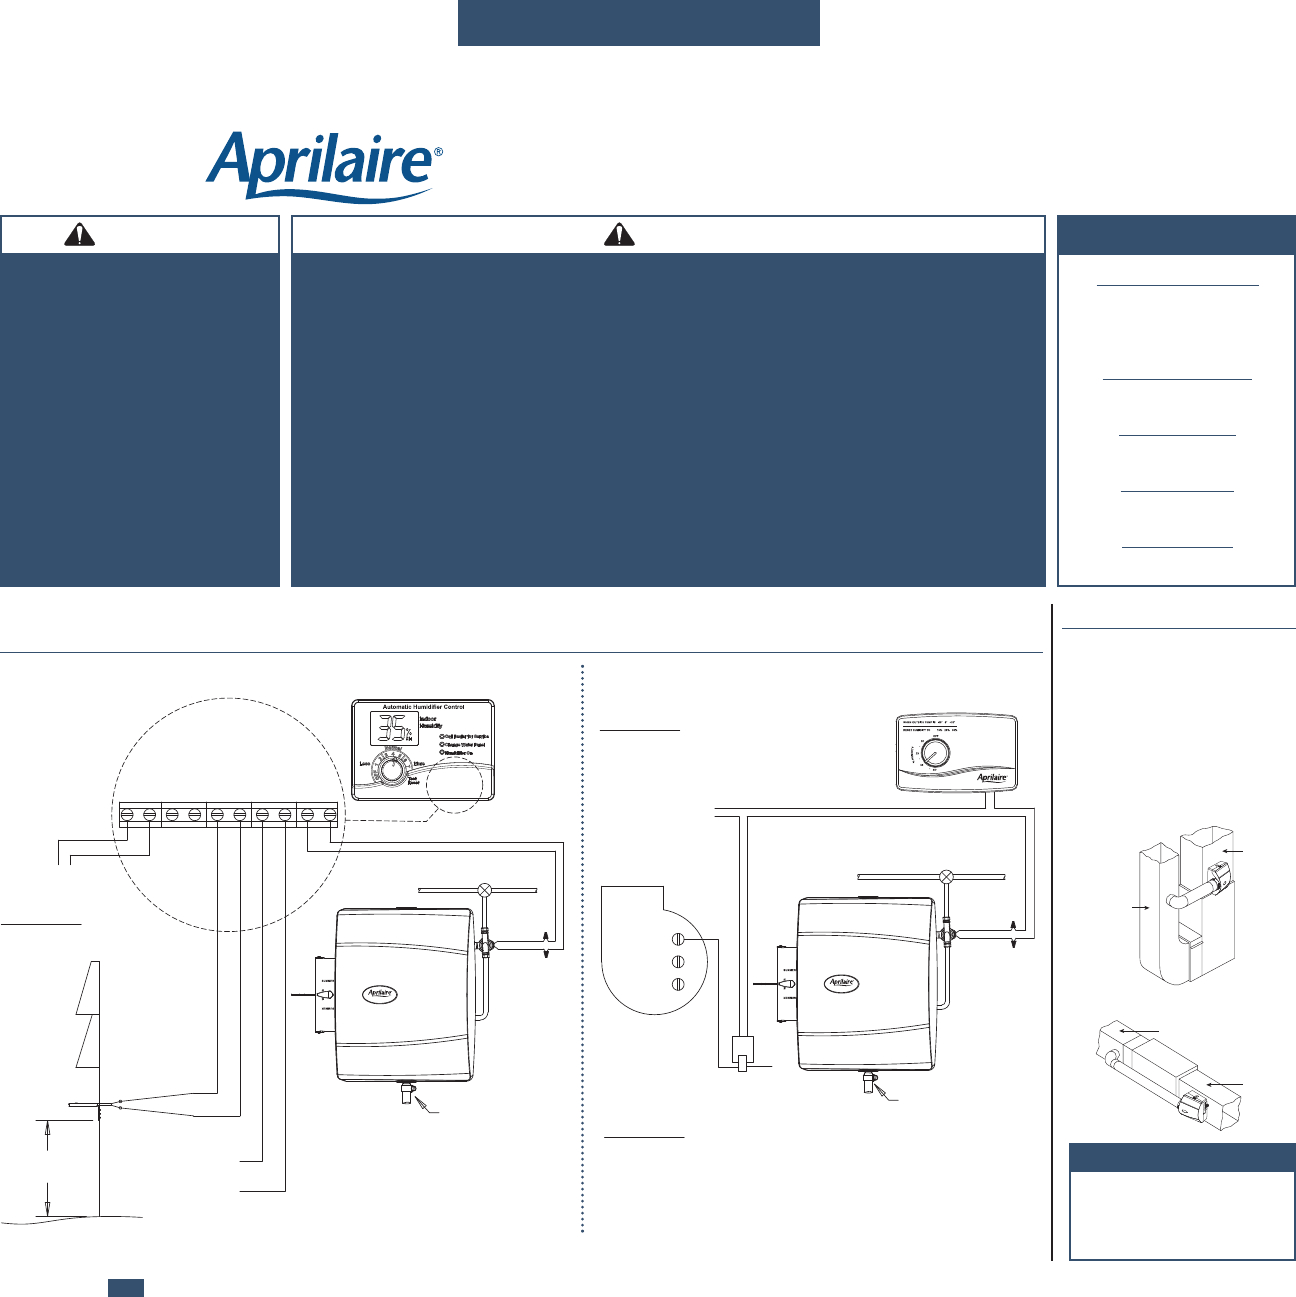 aprilaire 600 humidistat wiring diagram emg hz humidifier download